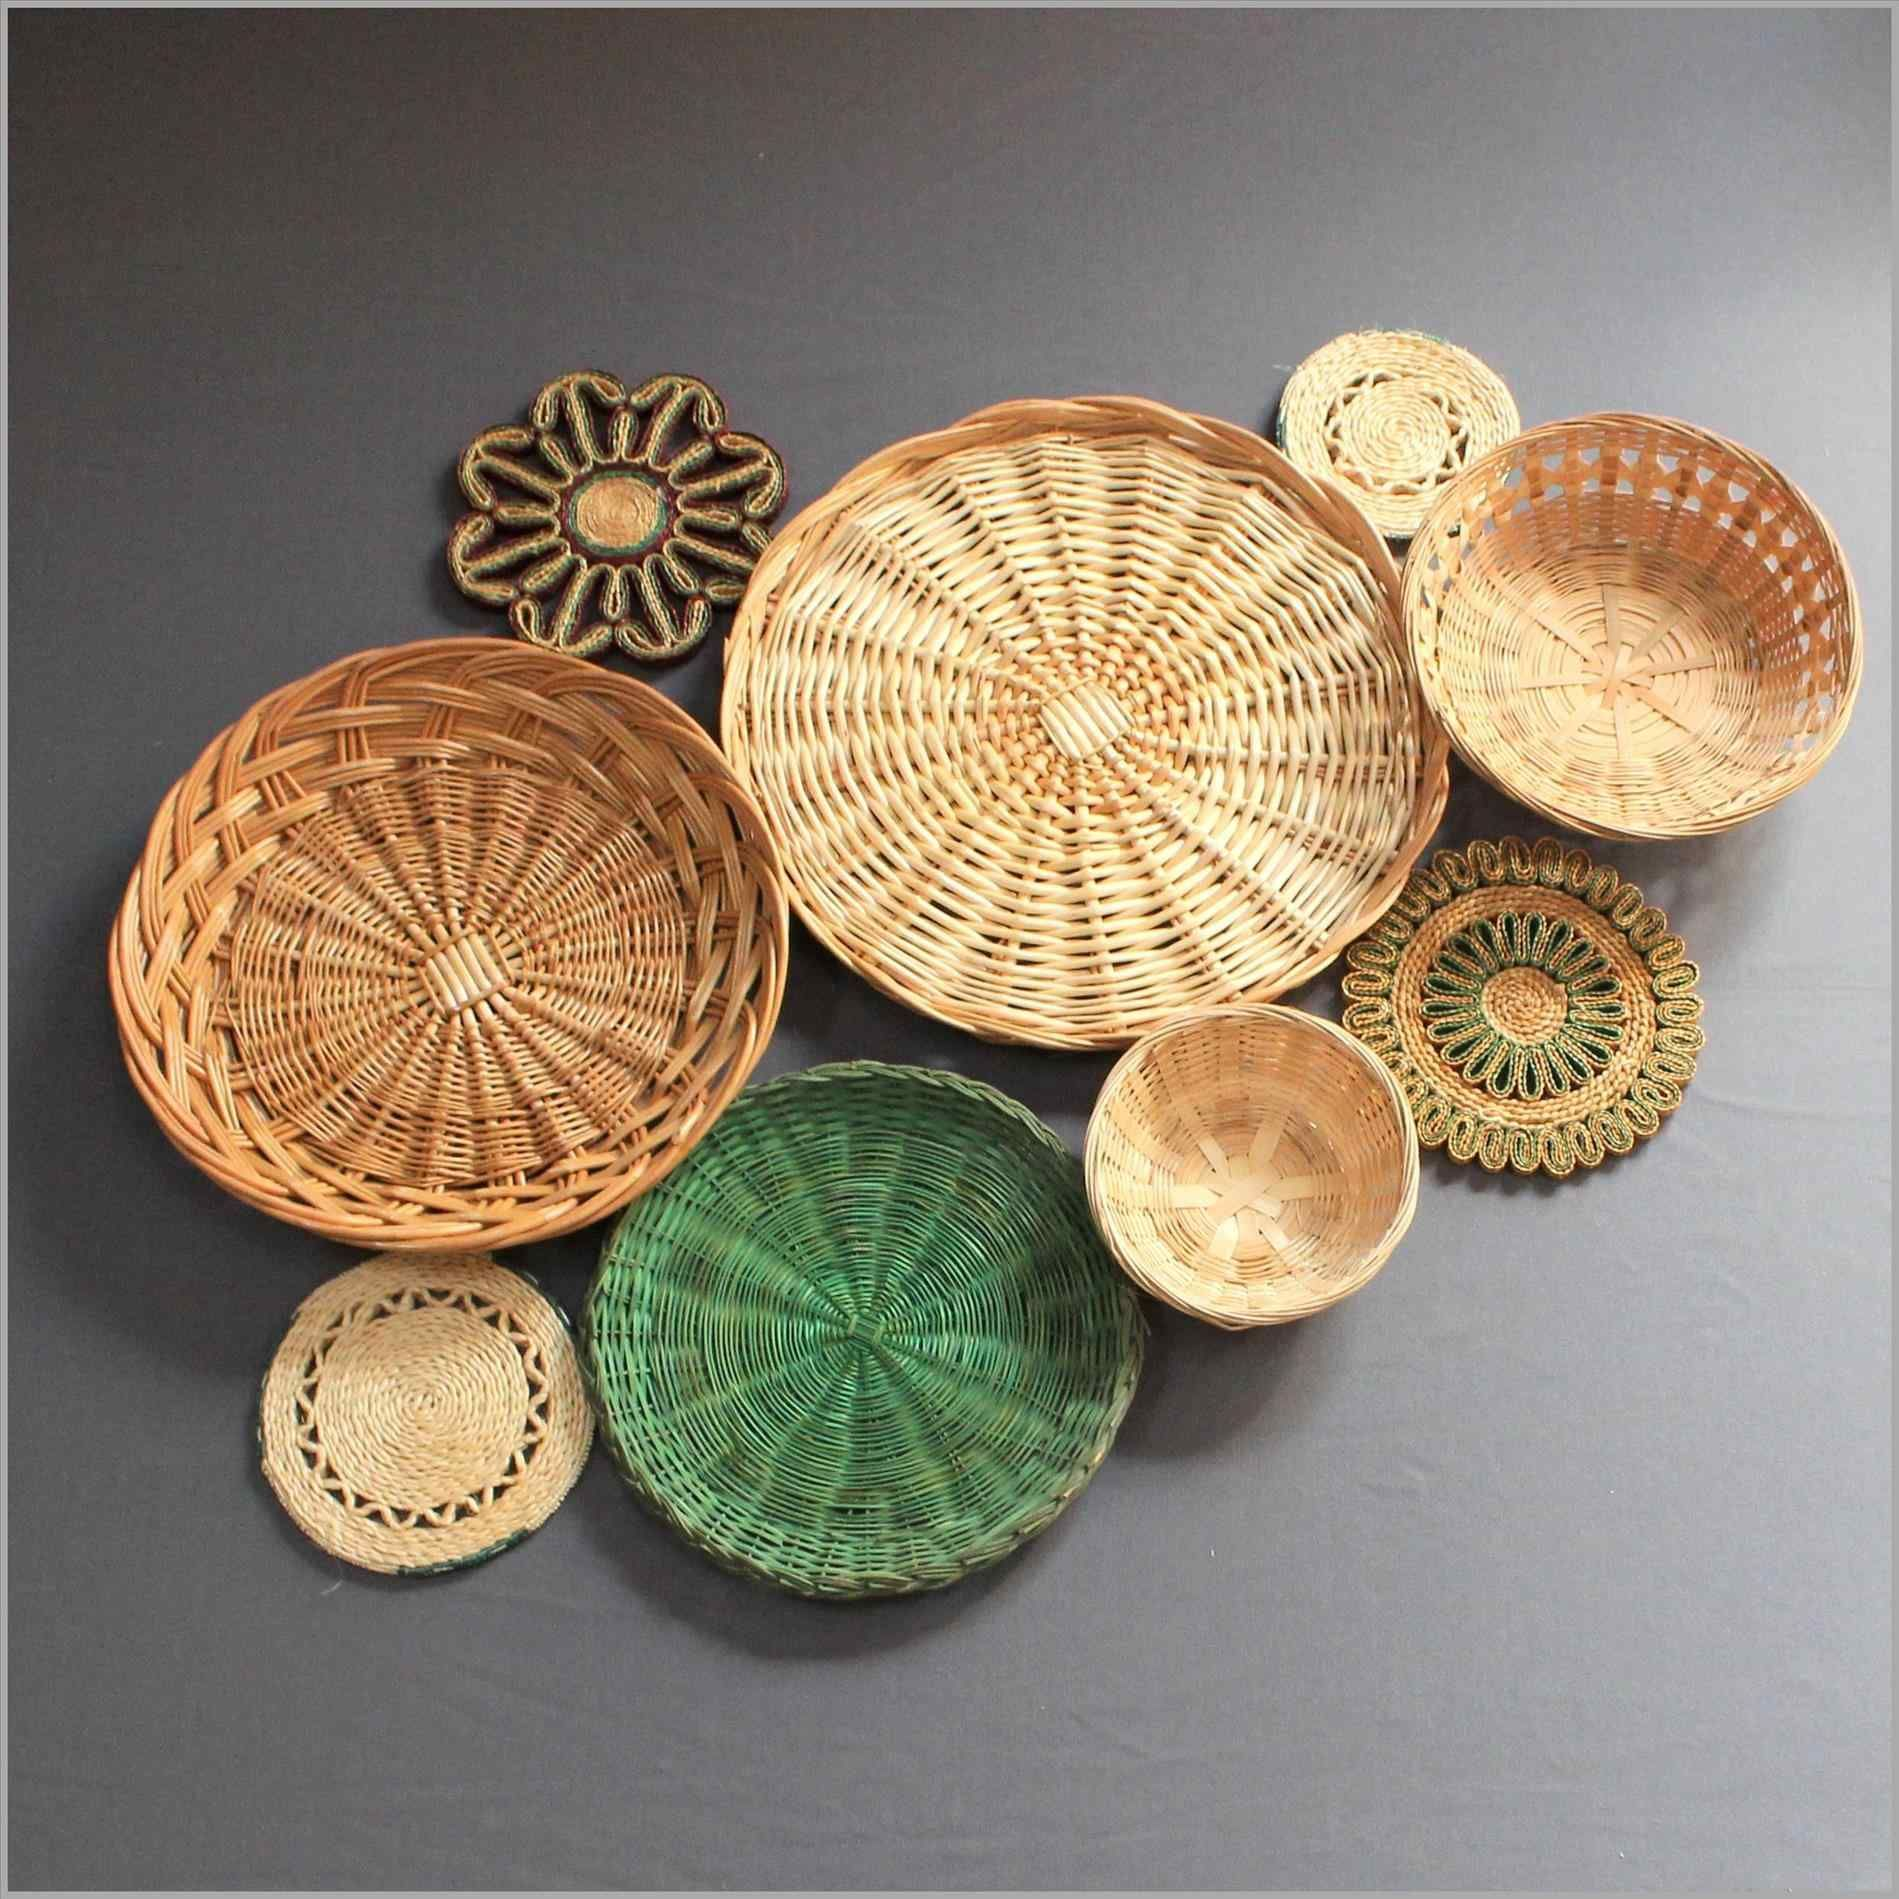 Decorative Baskets To Hang On Wall | Design | Pinterest | Decorative ...